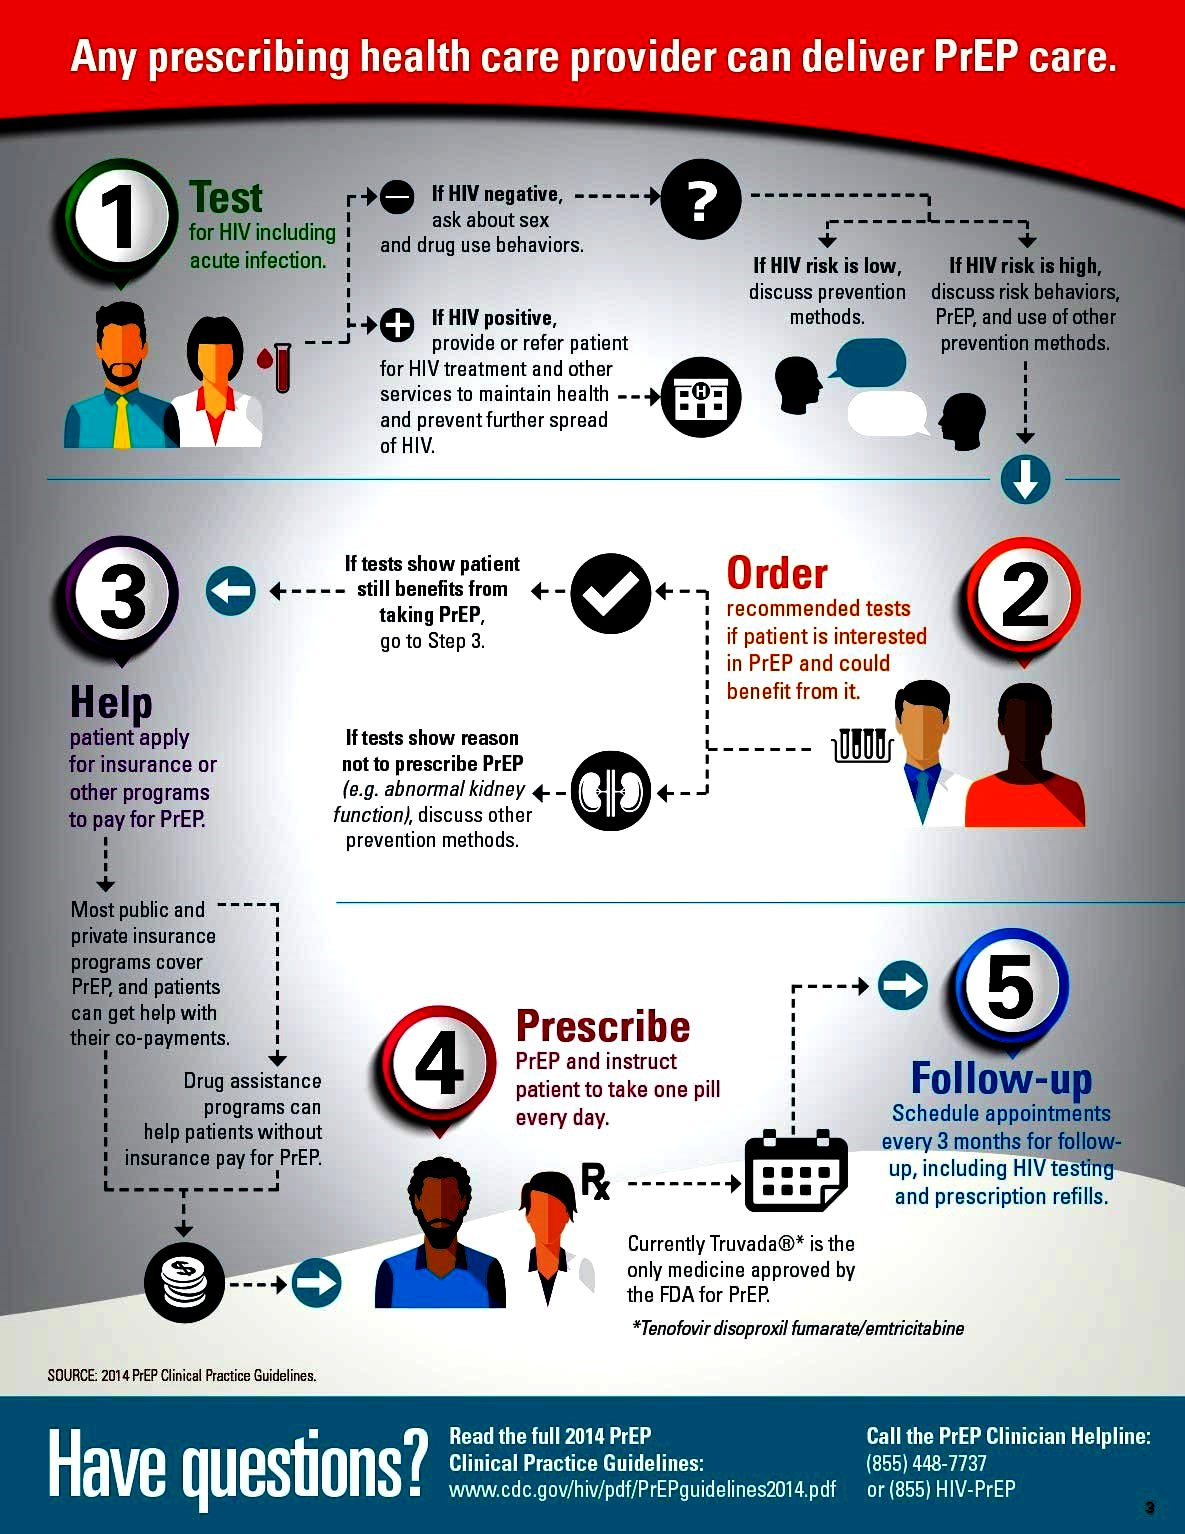 An infographic regarding PrEP Care